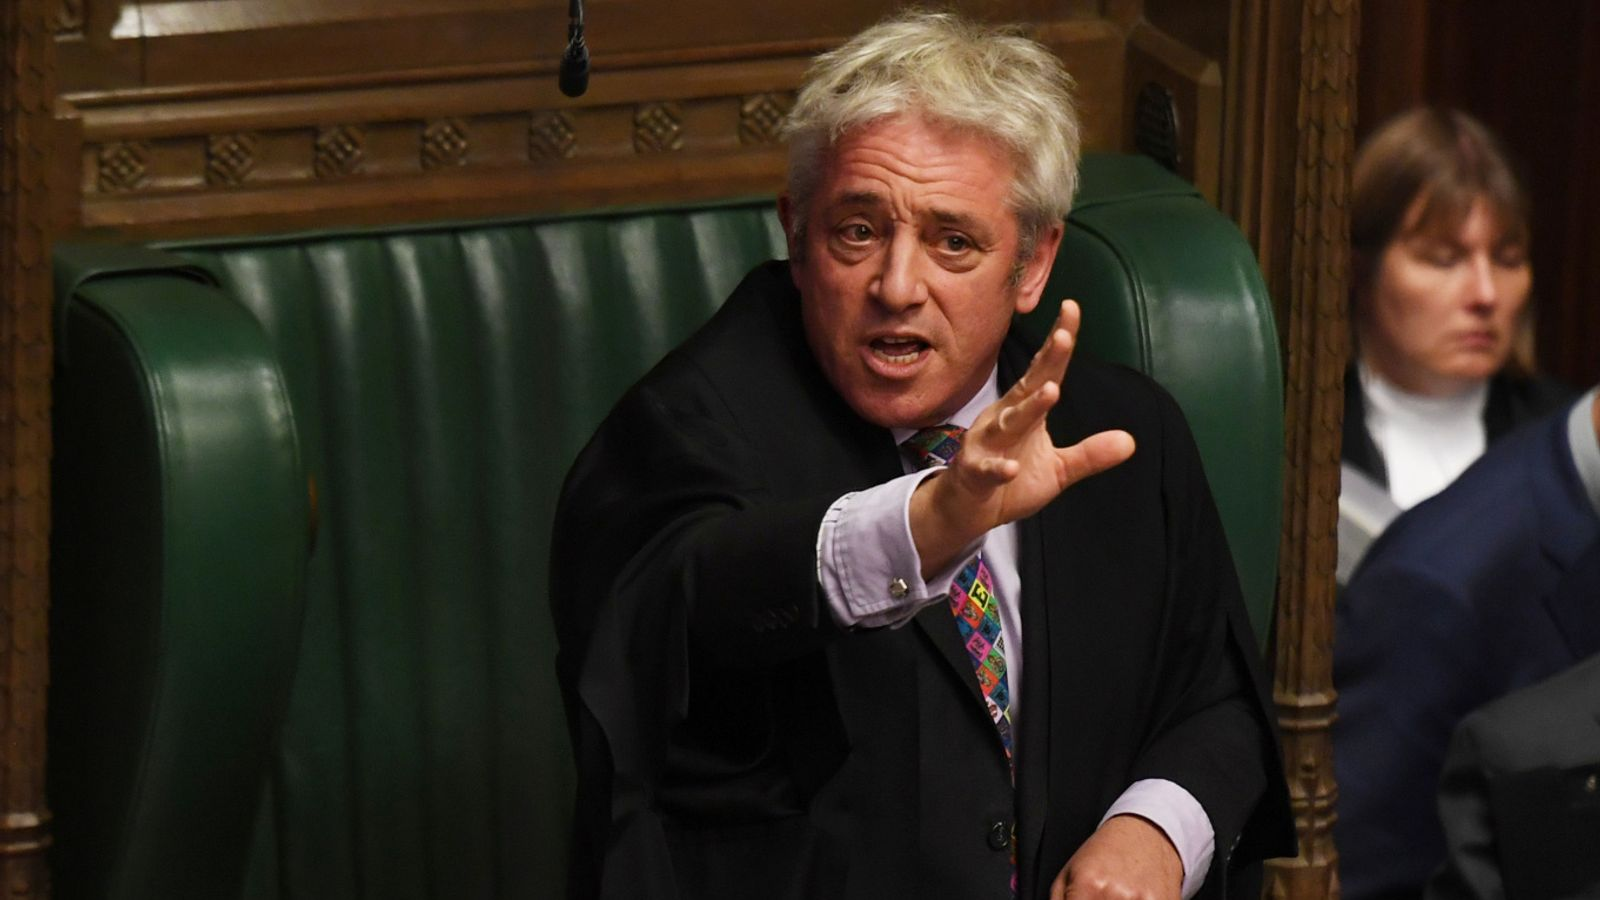 John Bercow: Former Commons Speaker and Tory MP joins Labour Party